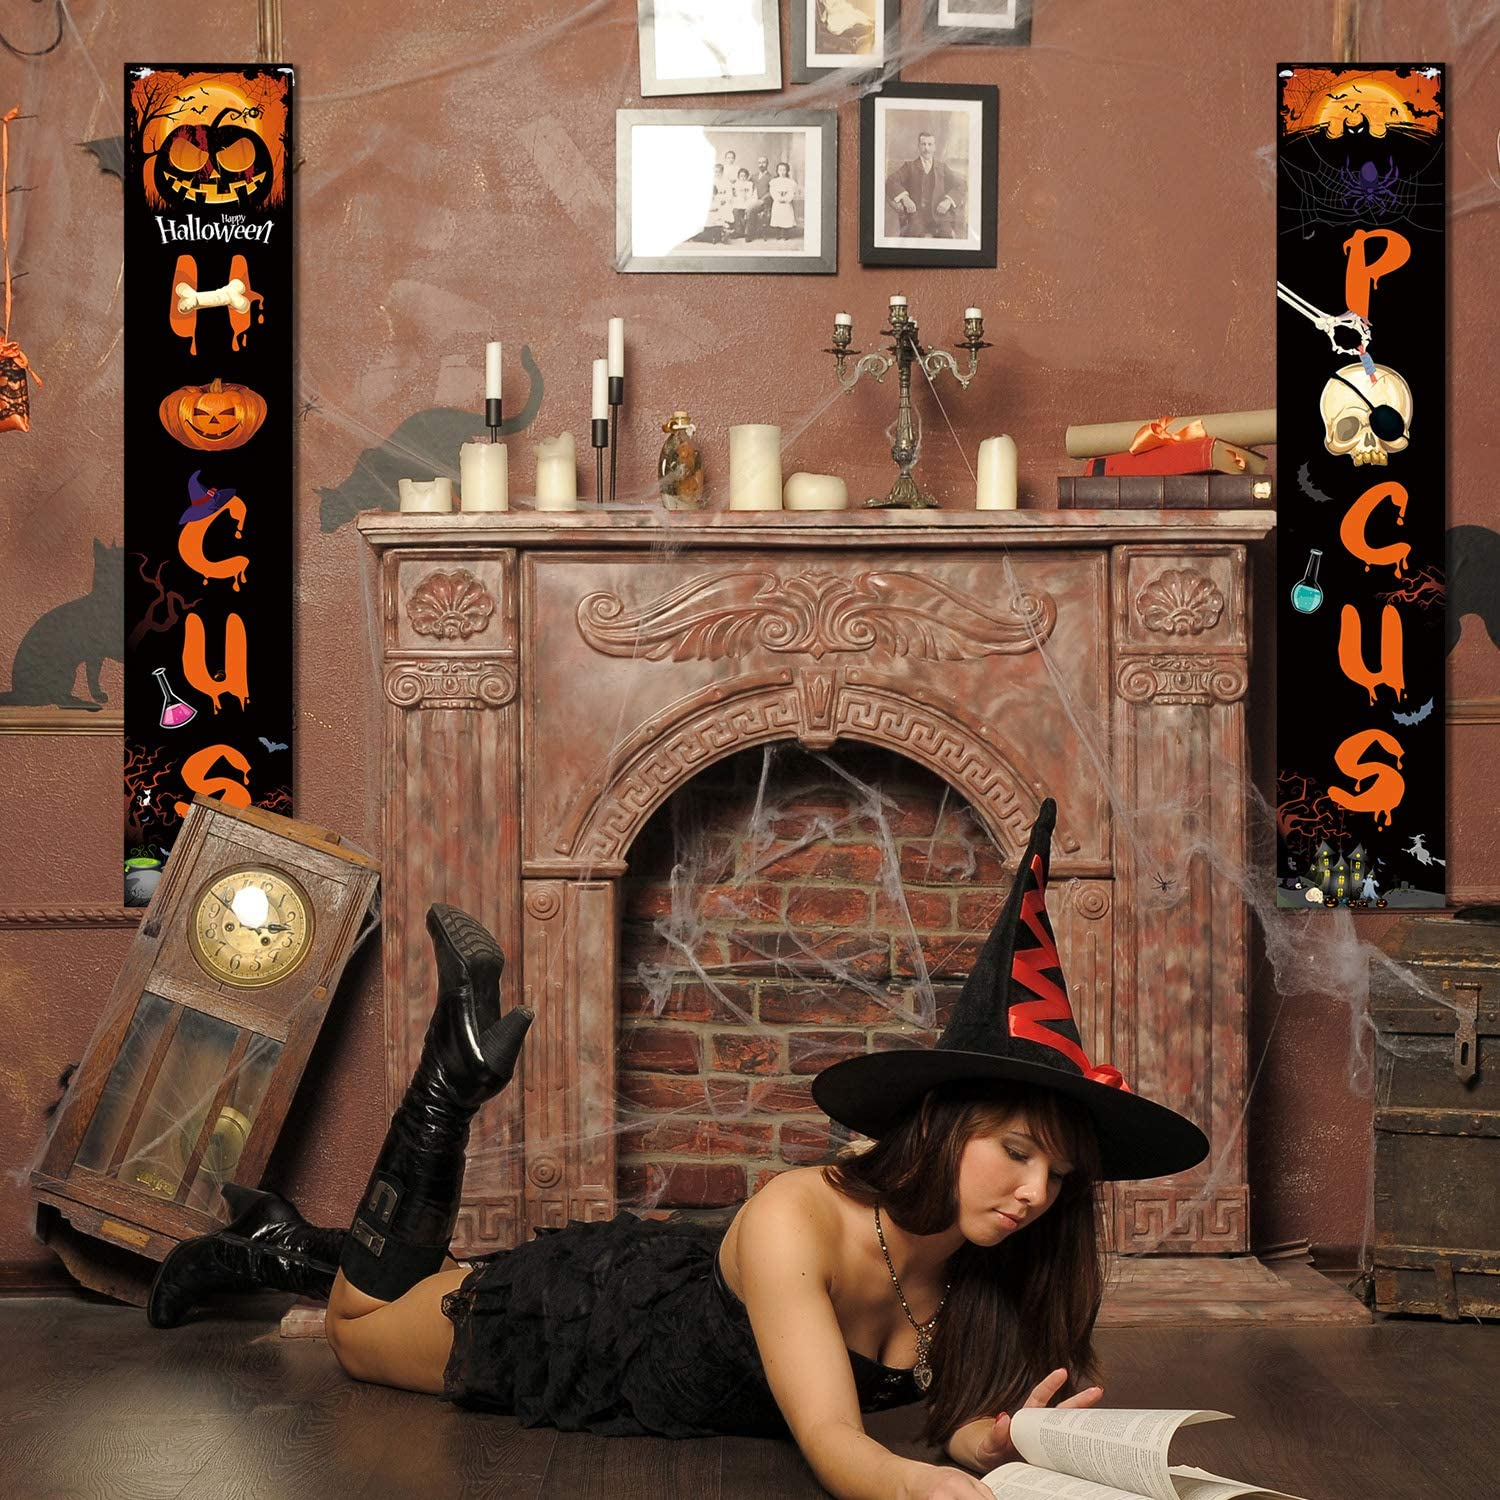 Blulu Halloween Decorations Hocus Pocus Porch Sign Witch Decor Banners for Halloween Party Yard Wall Office Living Room Classroom